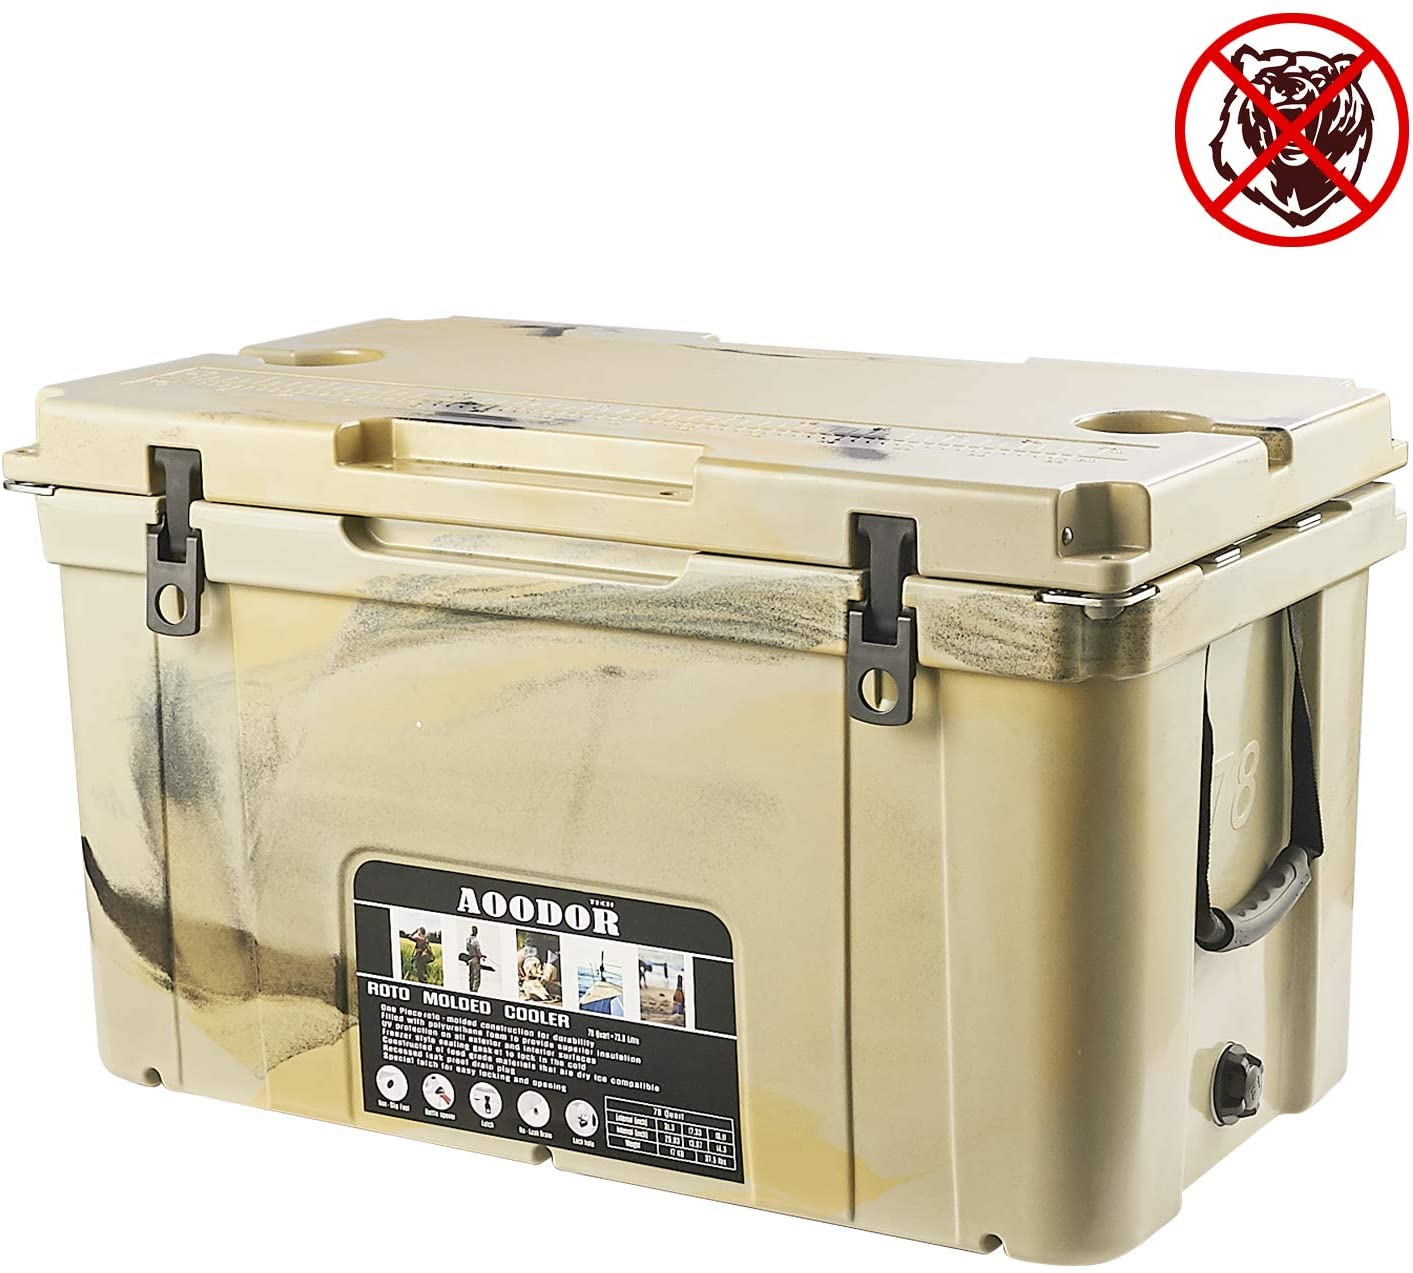 Aoodor Roto Molded Cooler 78 Quart Grizzly Bear Resistant with Basket Wheeled